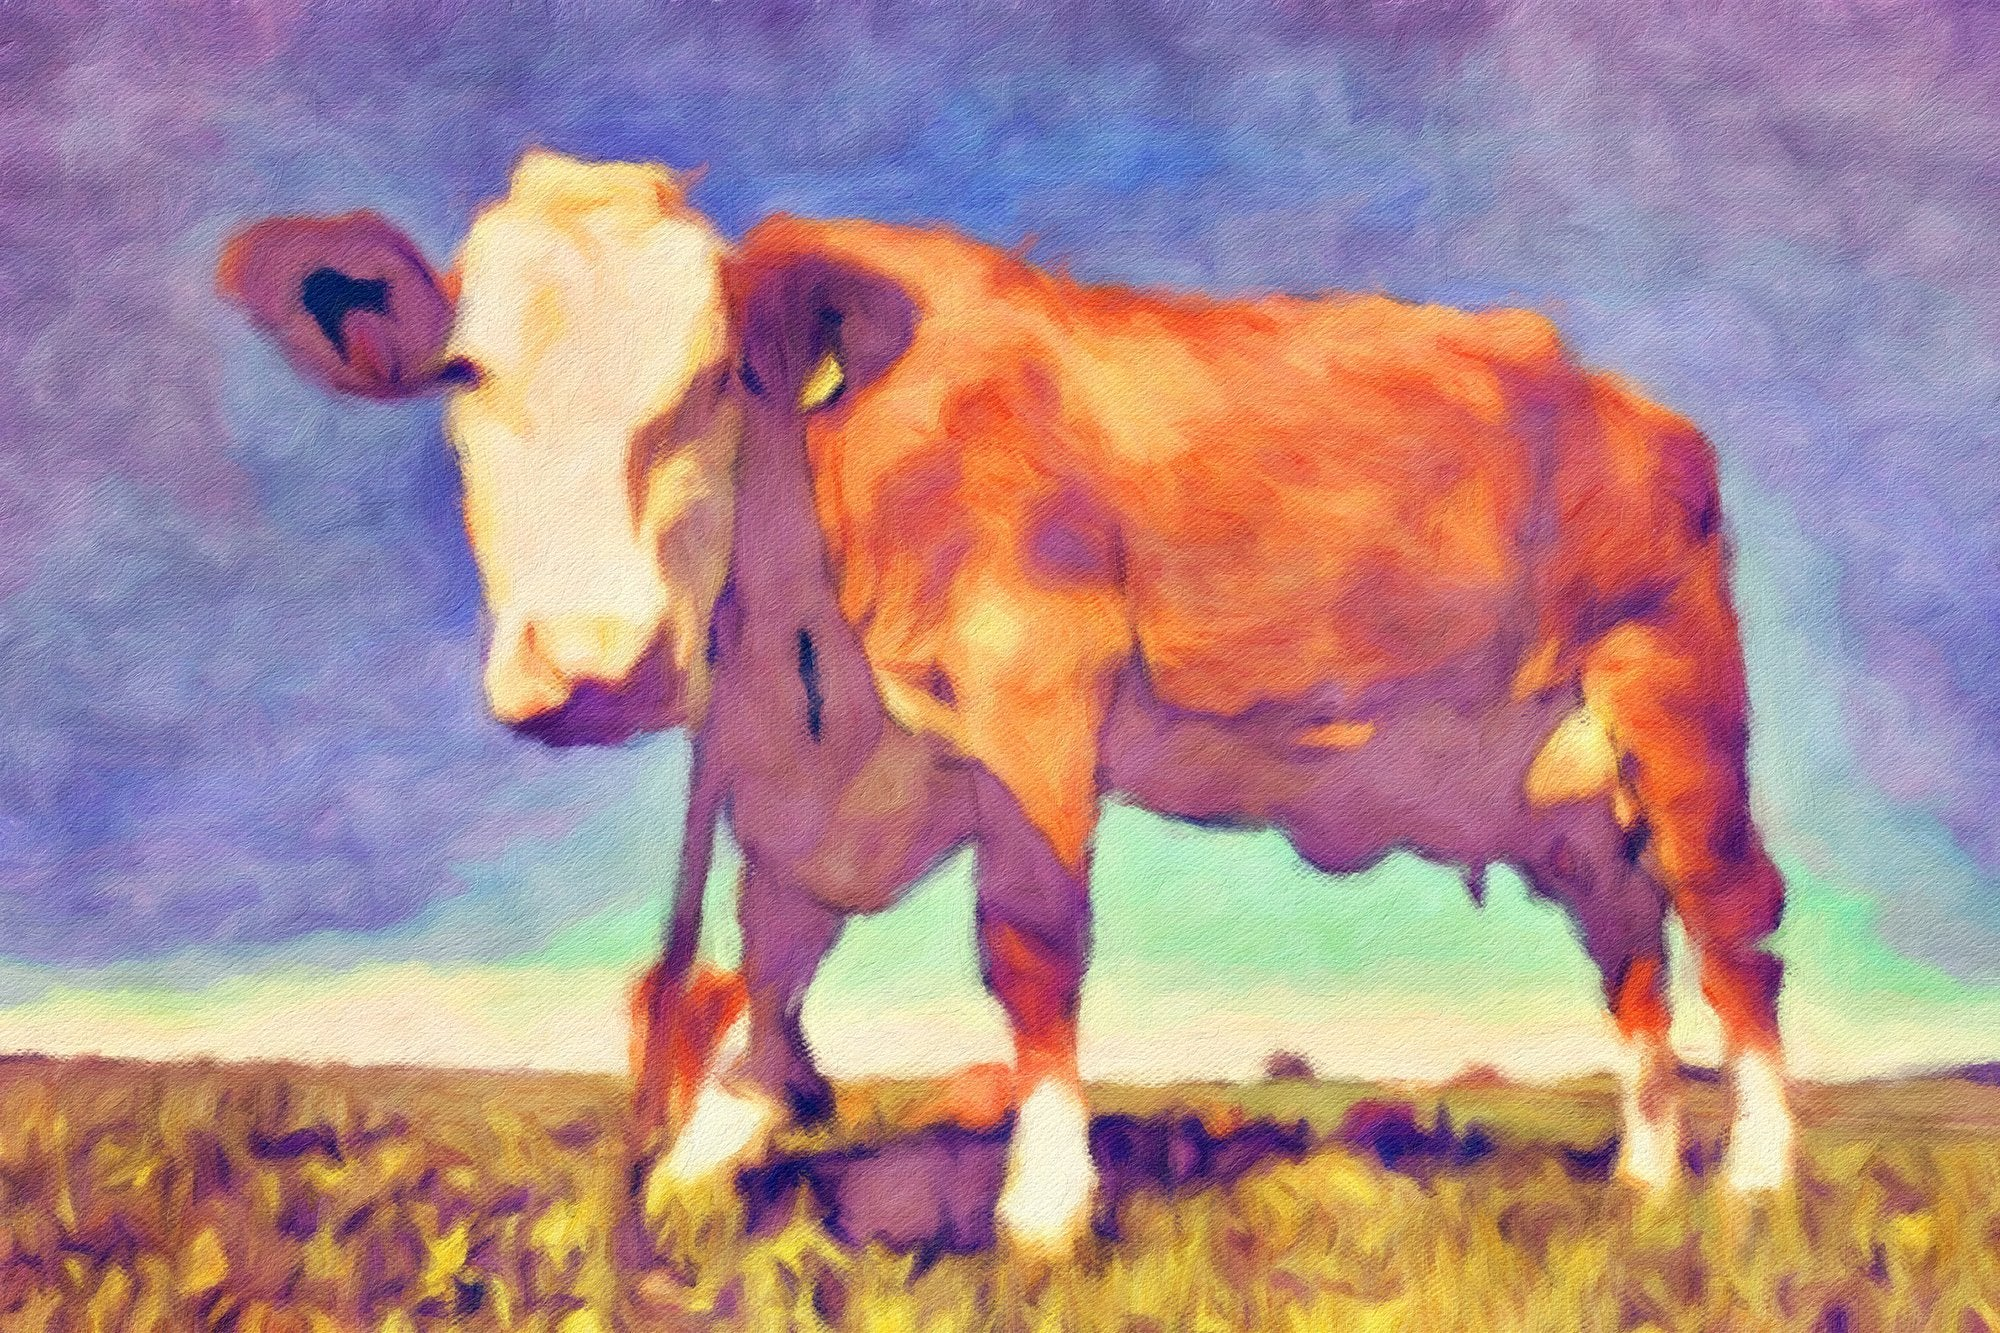 Cows No. 5, Reworked